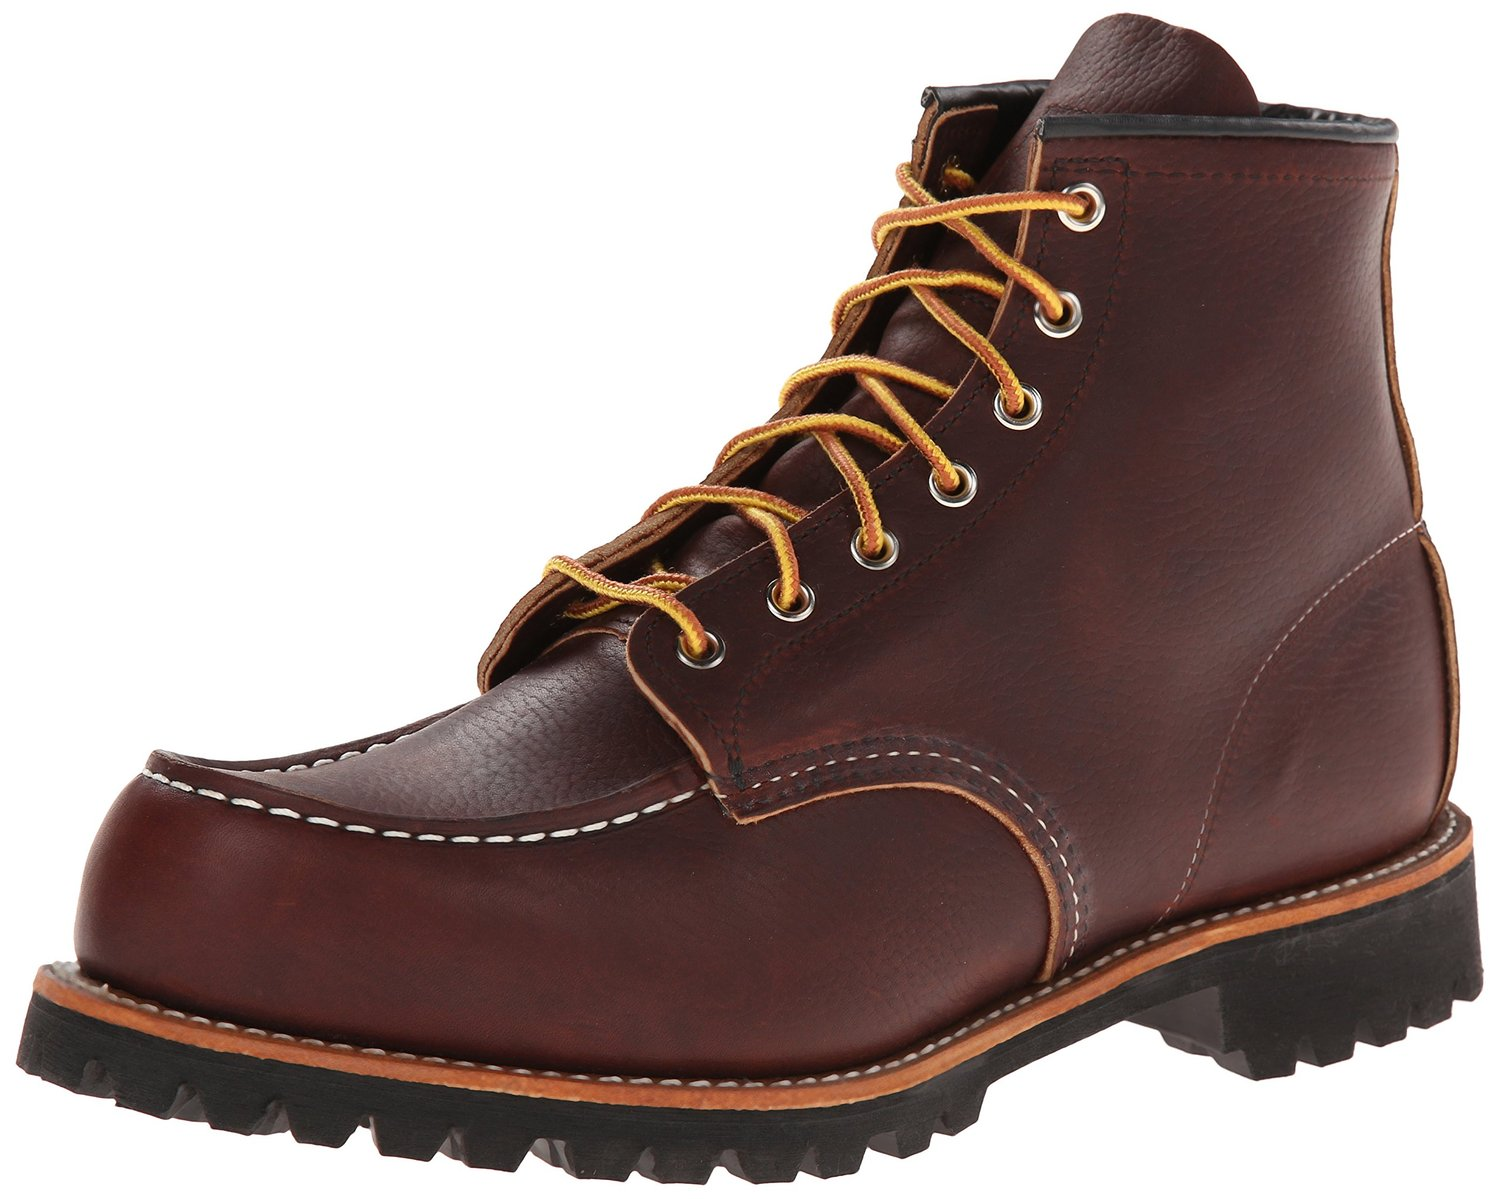 Red Wing Boots For Sale sn4vaNLT